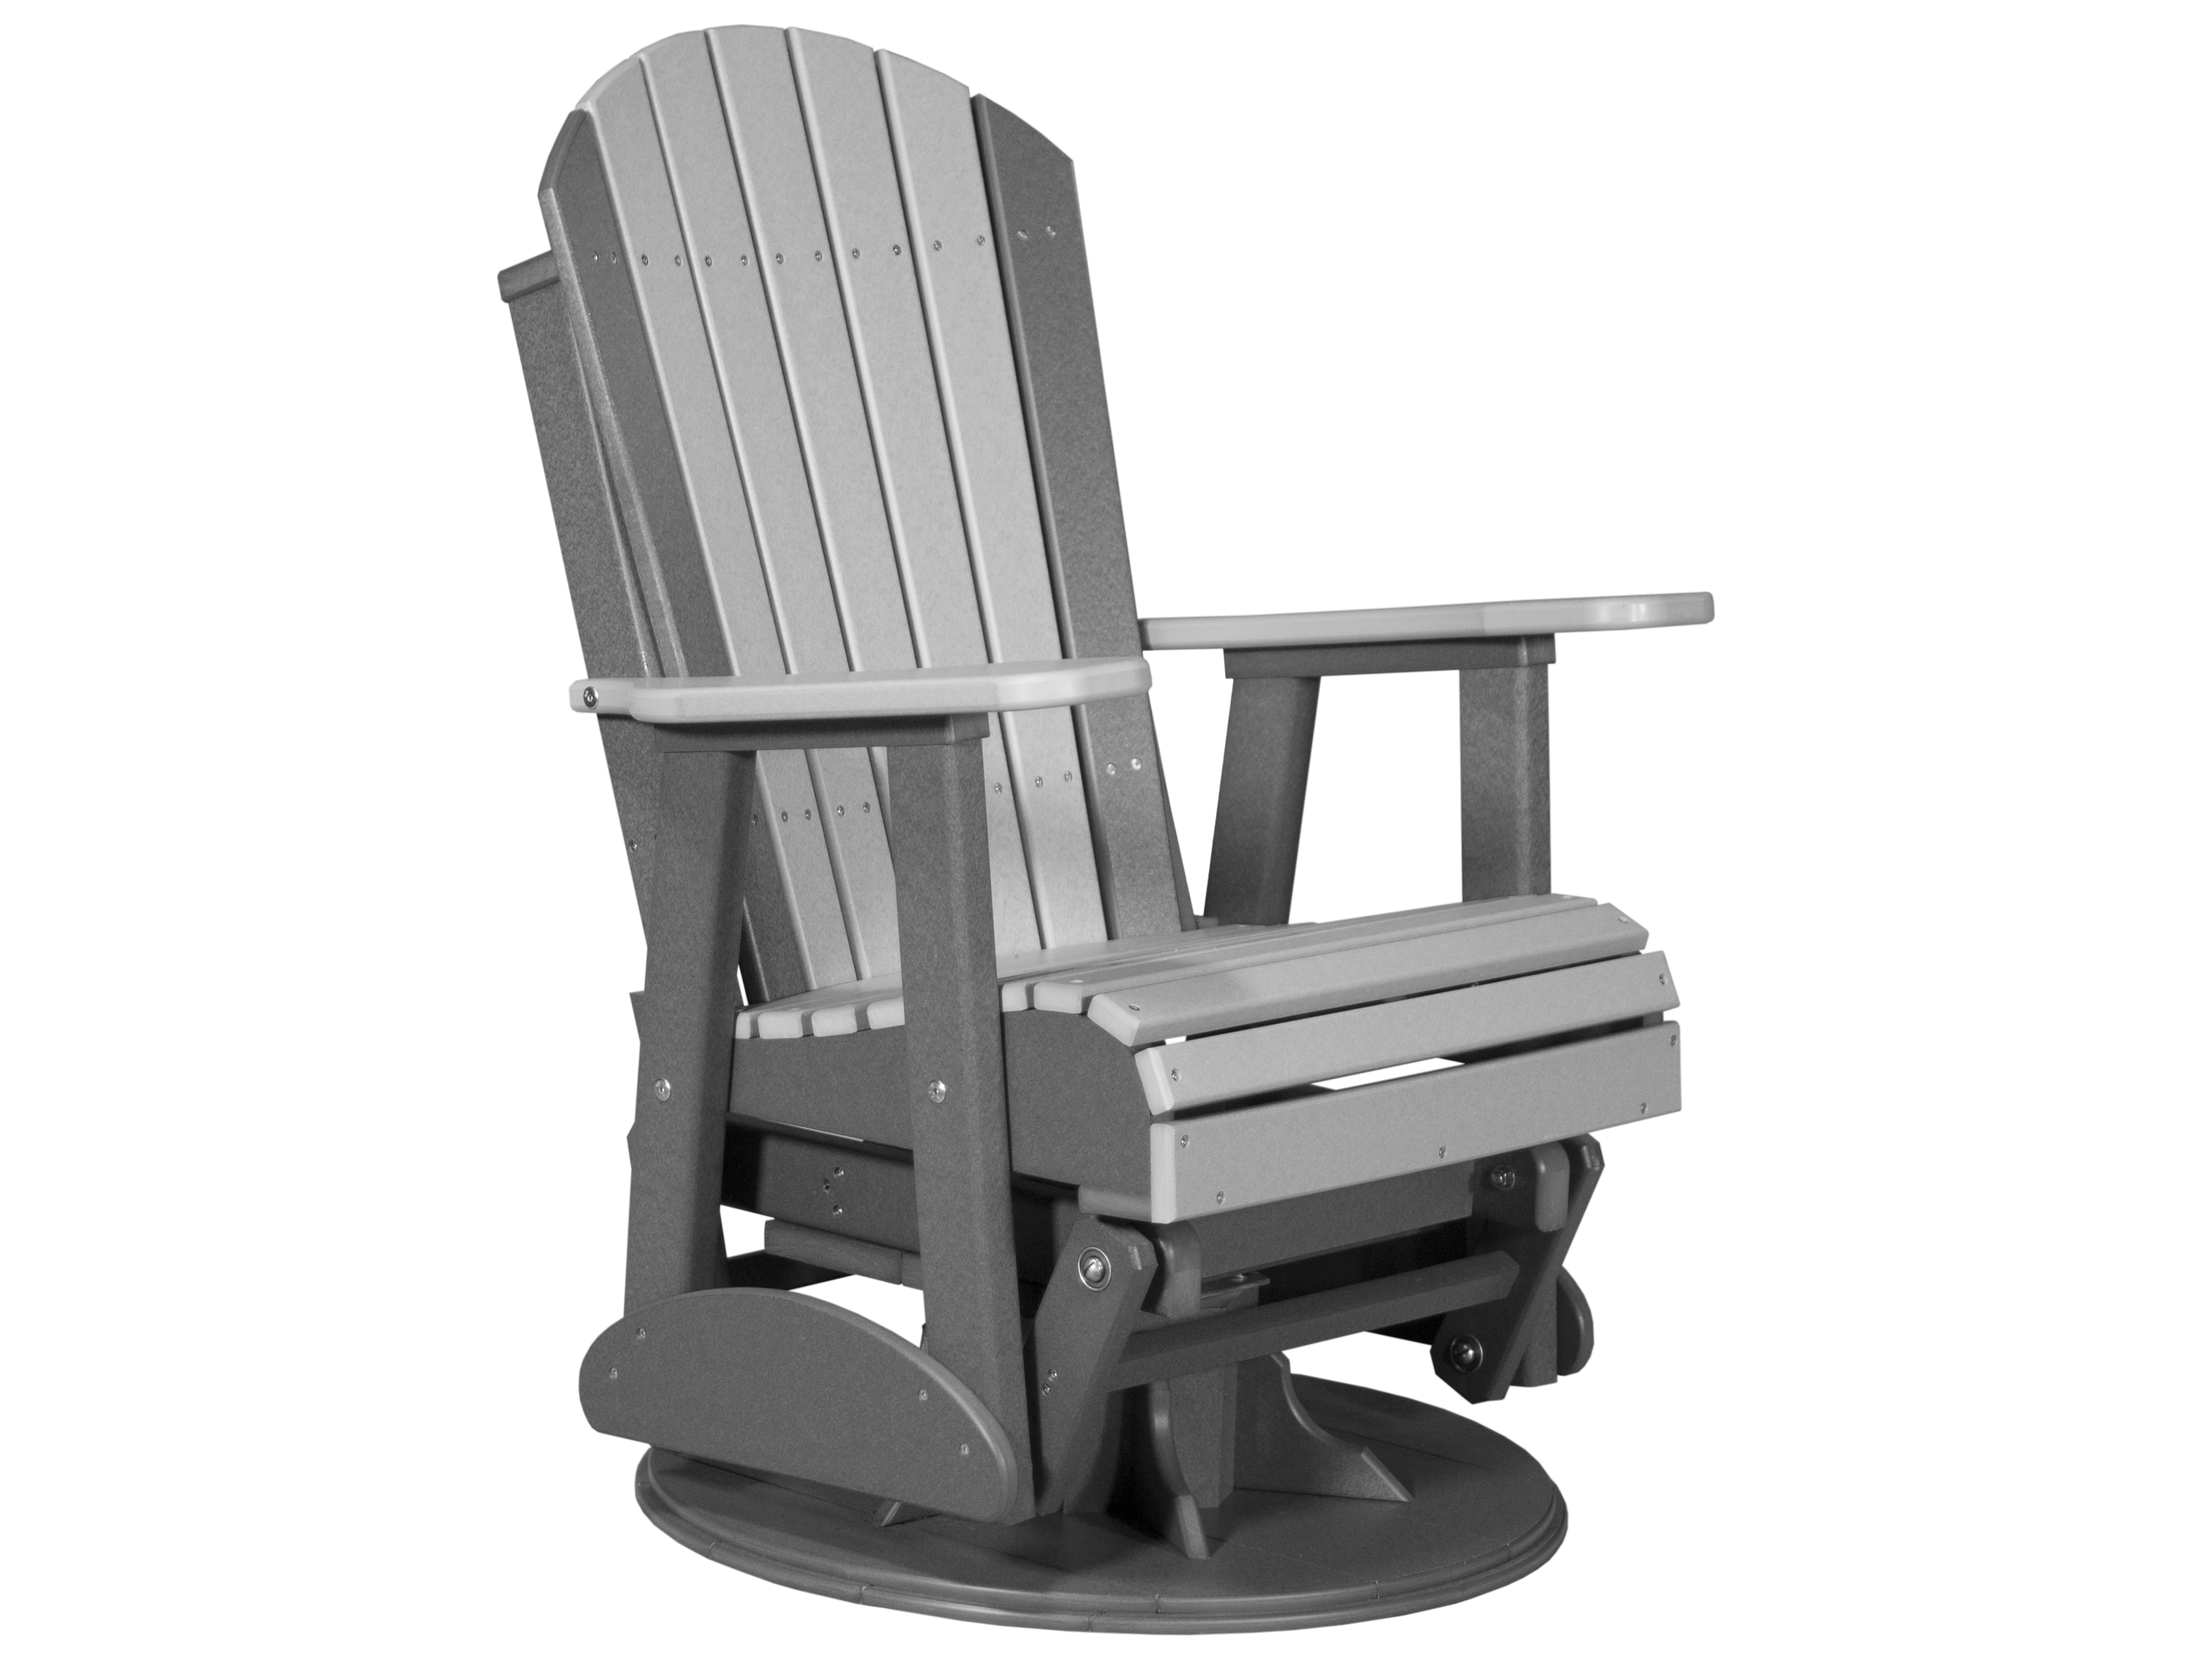 adirondack chairs recycled materials parsons set of 2 luxcraft plastic 39 swivel glider